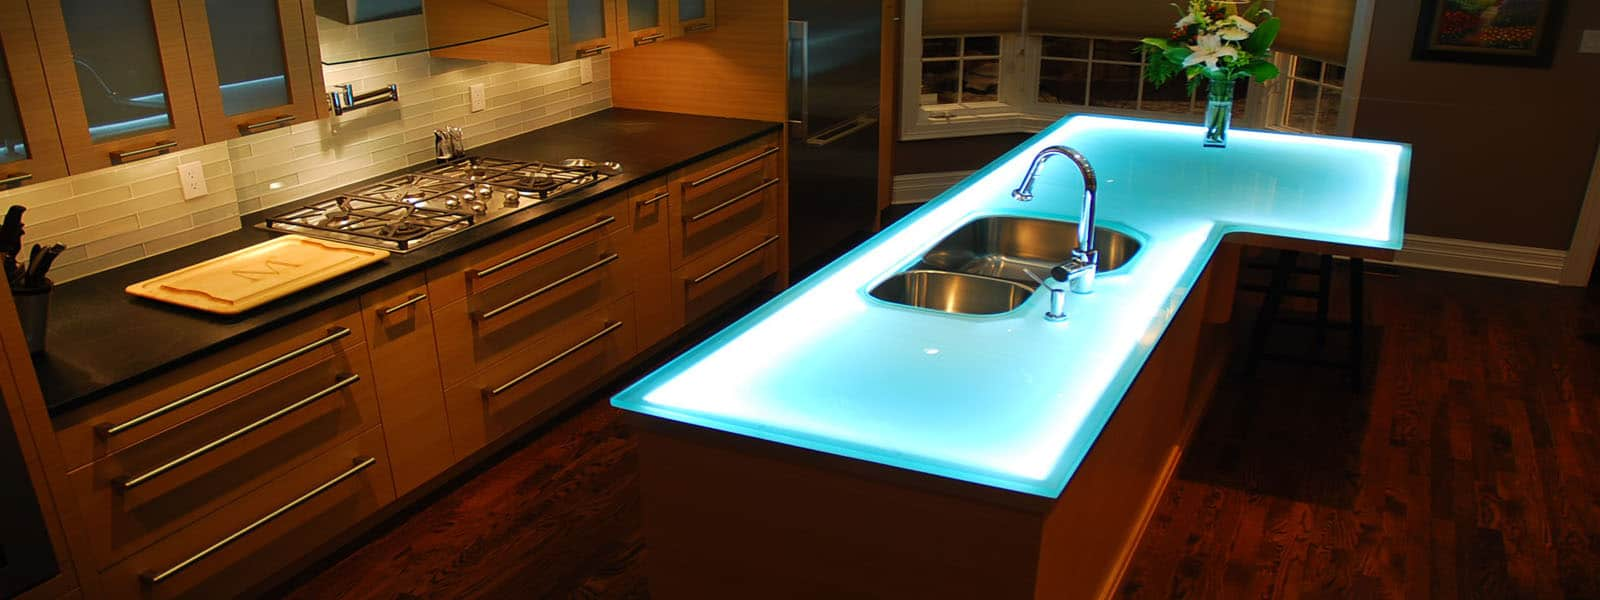 Cesar Countertop Modern Kitchen Countertops From Unusual Materials 30 Ideas